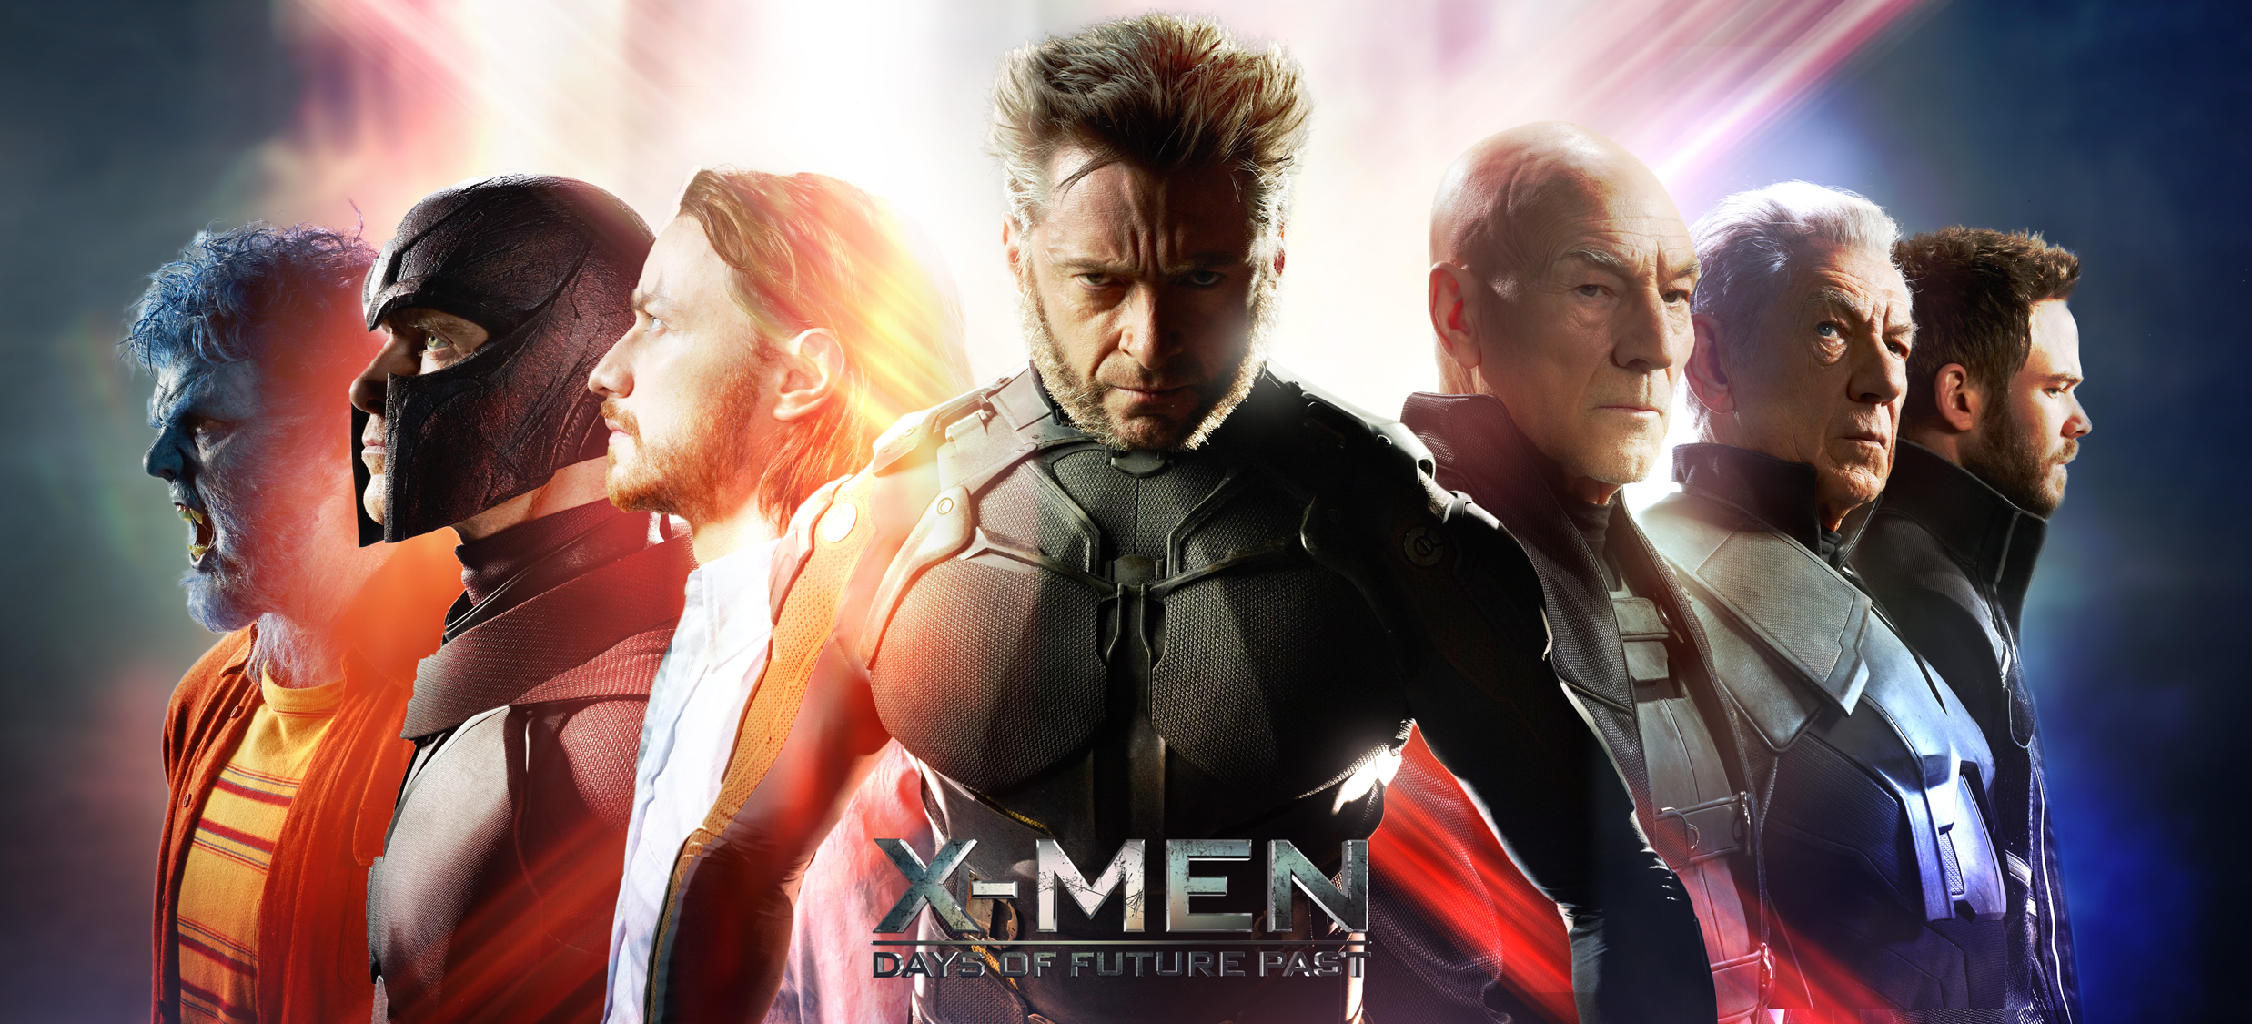 Image result for days of future past banner